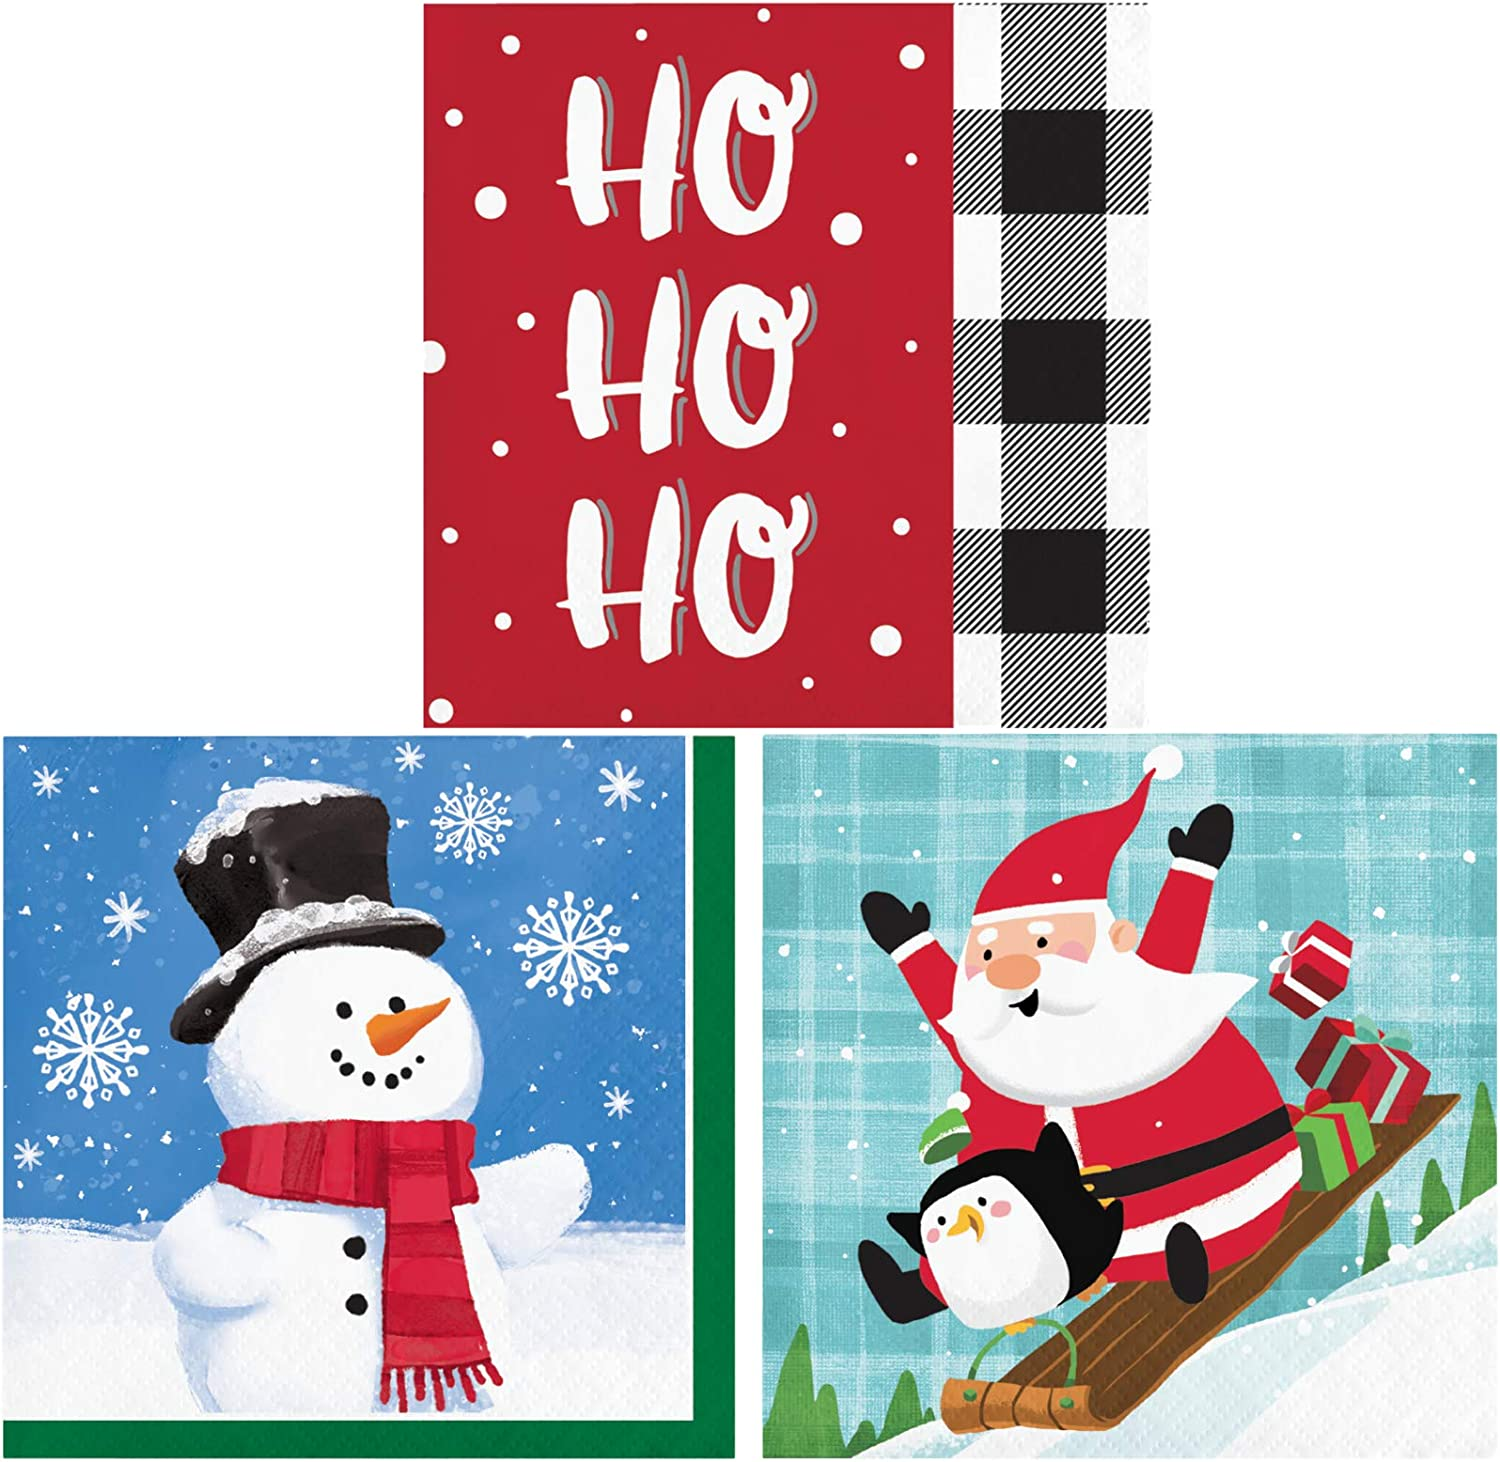 Christmas Beverage Napkins Variety Pack | Bundle Includes 48 Beverage Napkins in 3 Different Fun Holiday Designs | Santa Snowman Ho Ho Ho